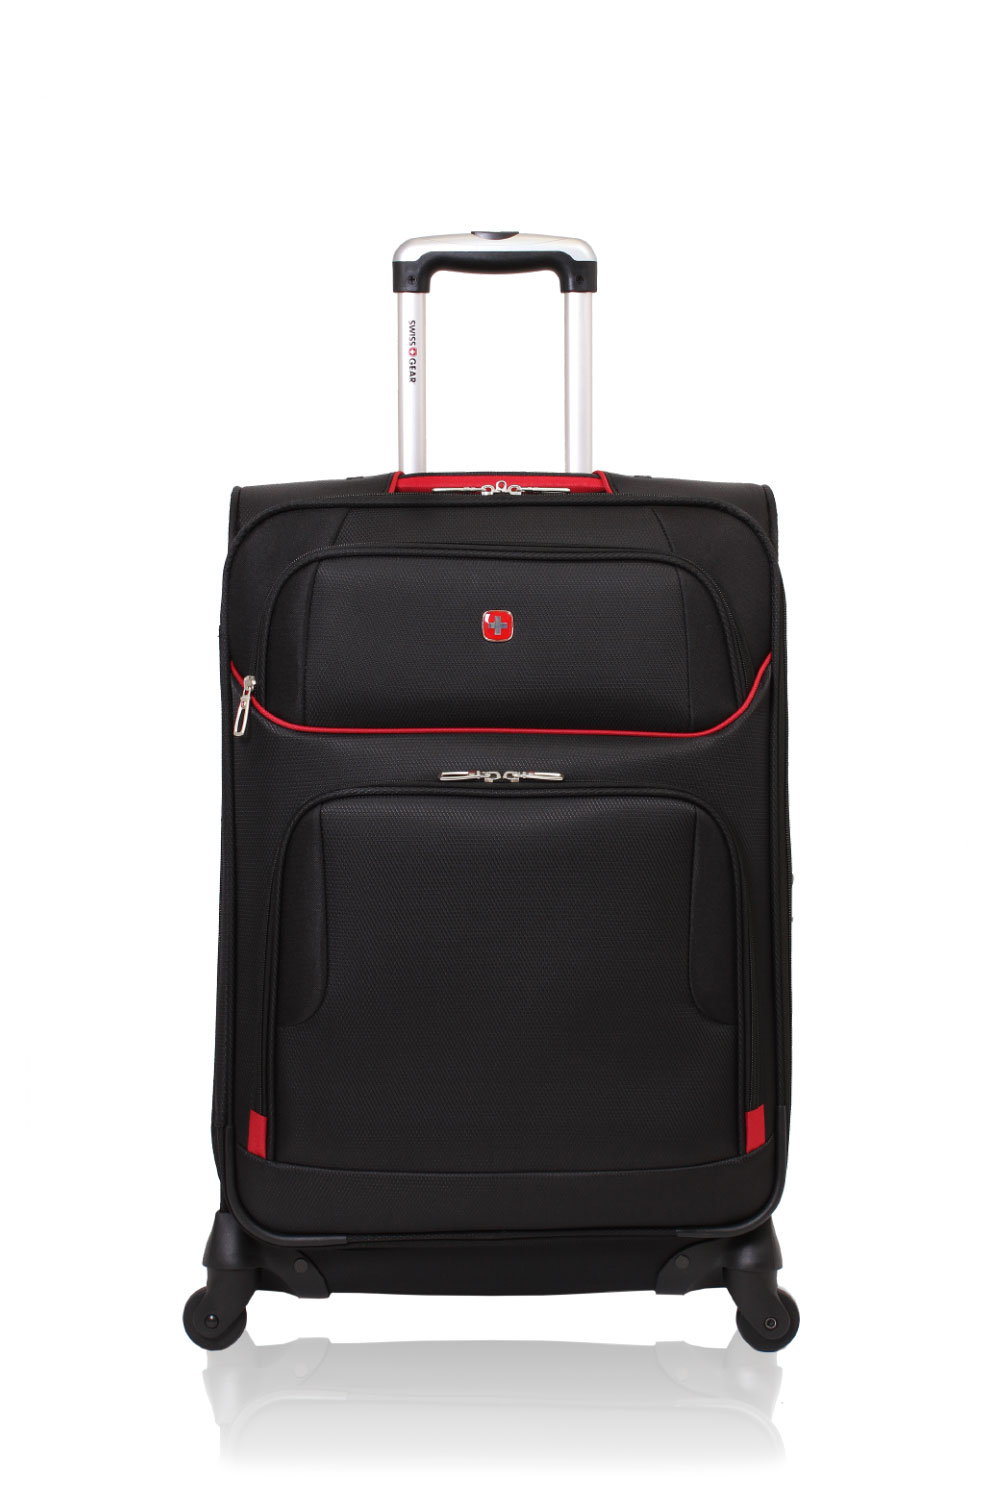 classic-black-and-red-trim-swiss-gear-black-friday-luggage-deal